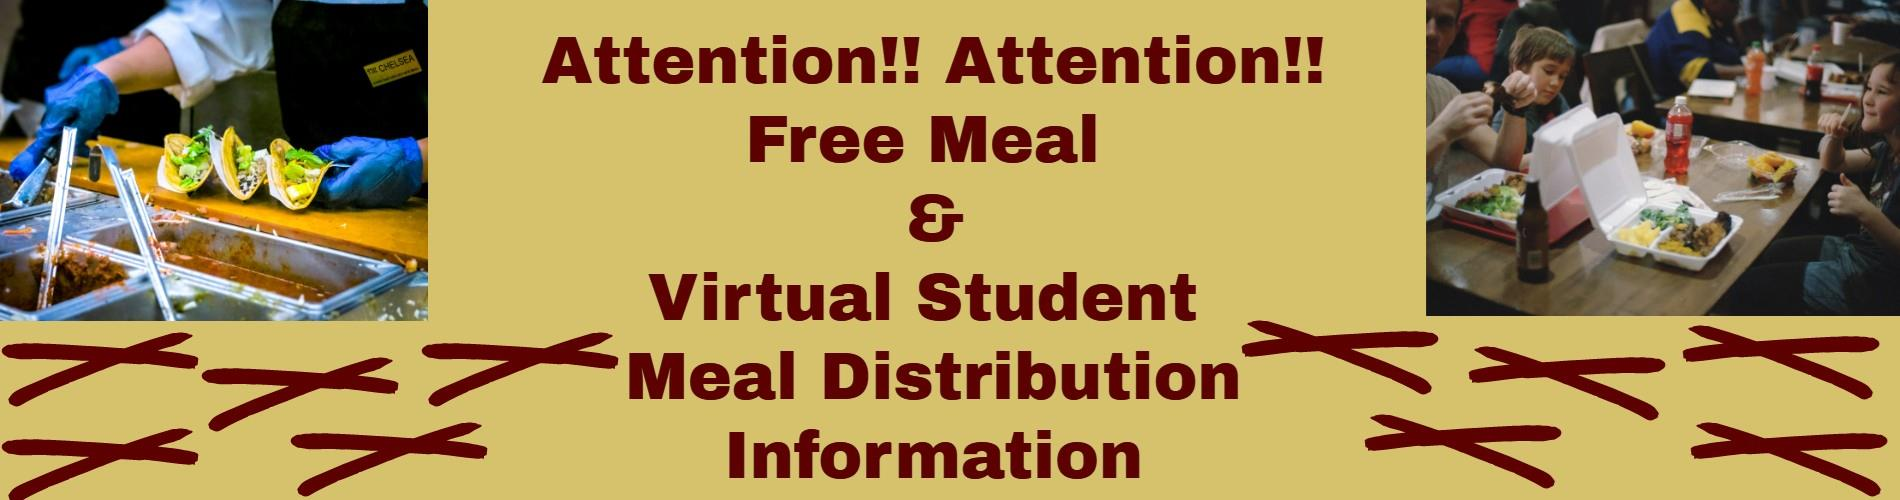 Free Meal and Virtual Student Meal Distribution Information